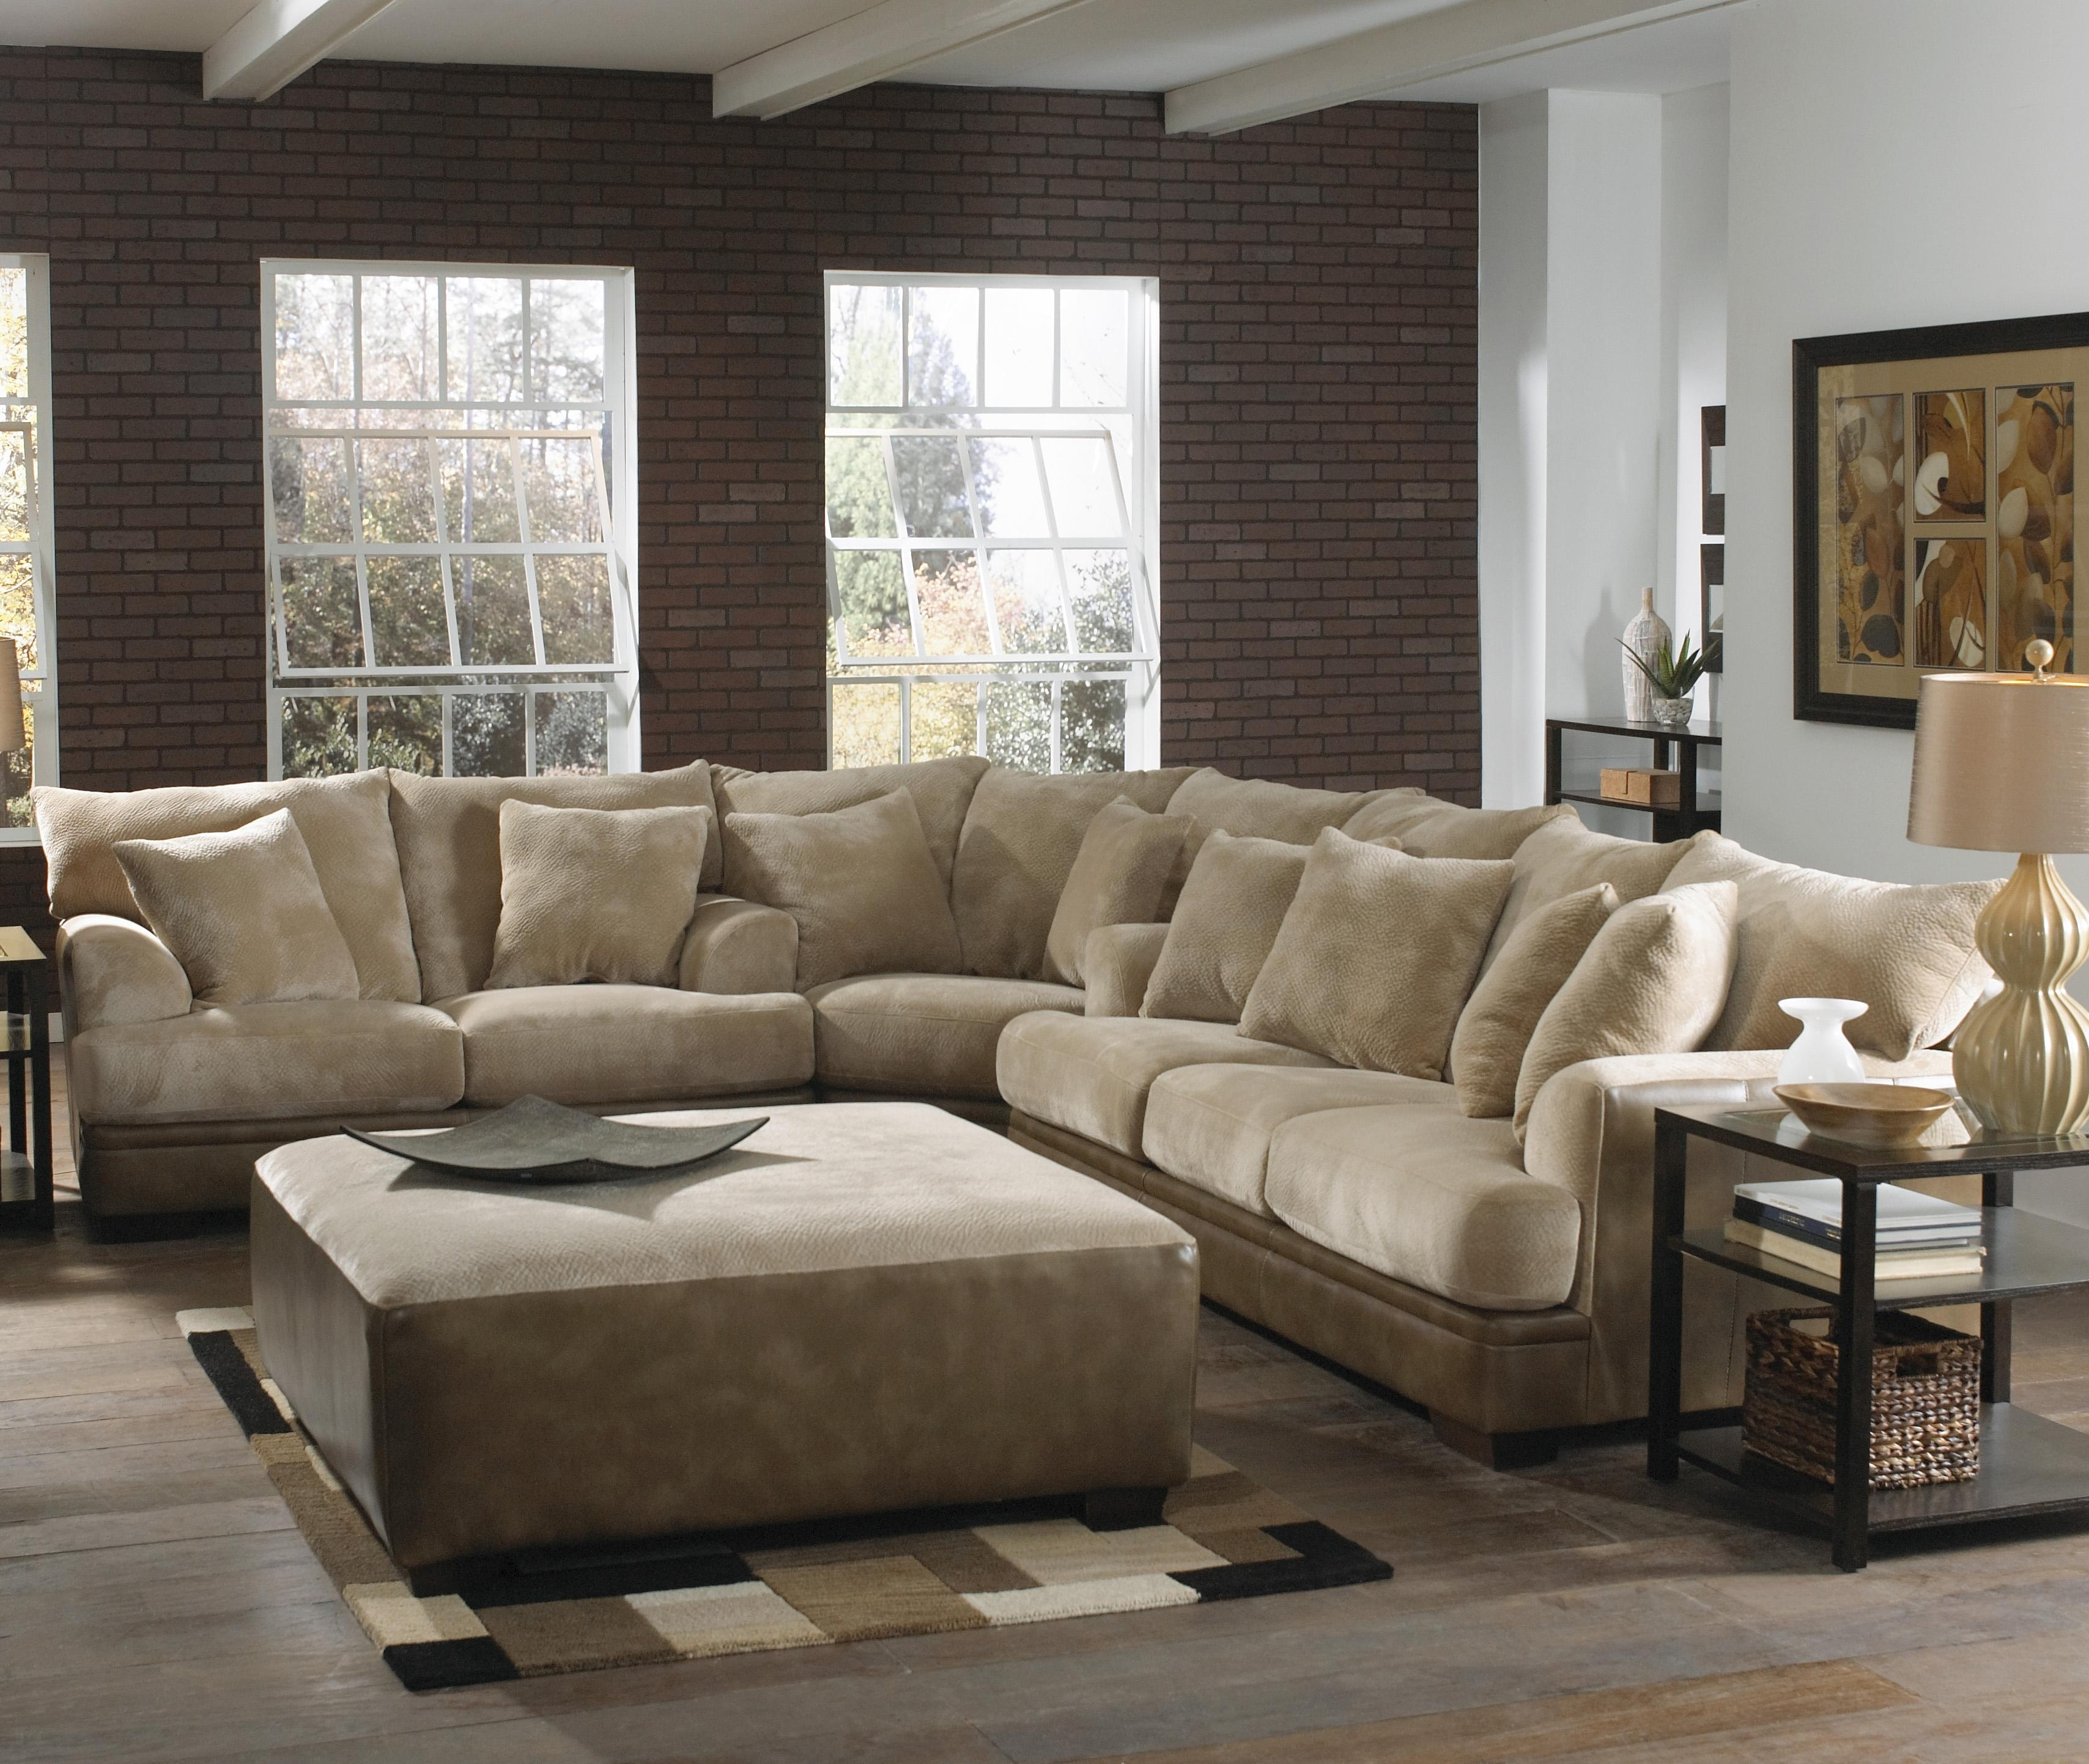 Well Known Ottawa Sale Sectional Sofas For Furniture : Family Room Sectional Sofa Novogratz Vintage Tufted (View 19 of 20)